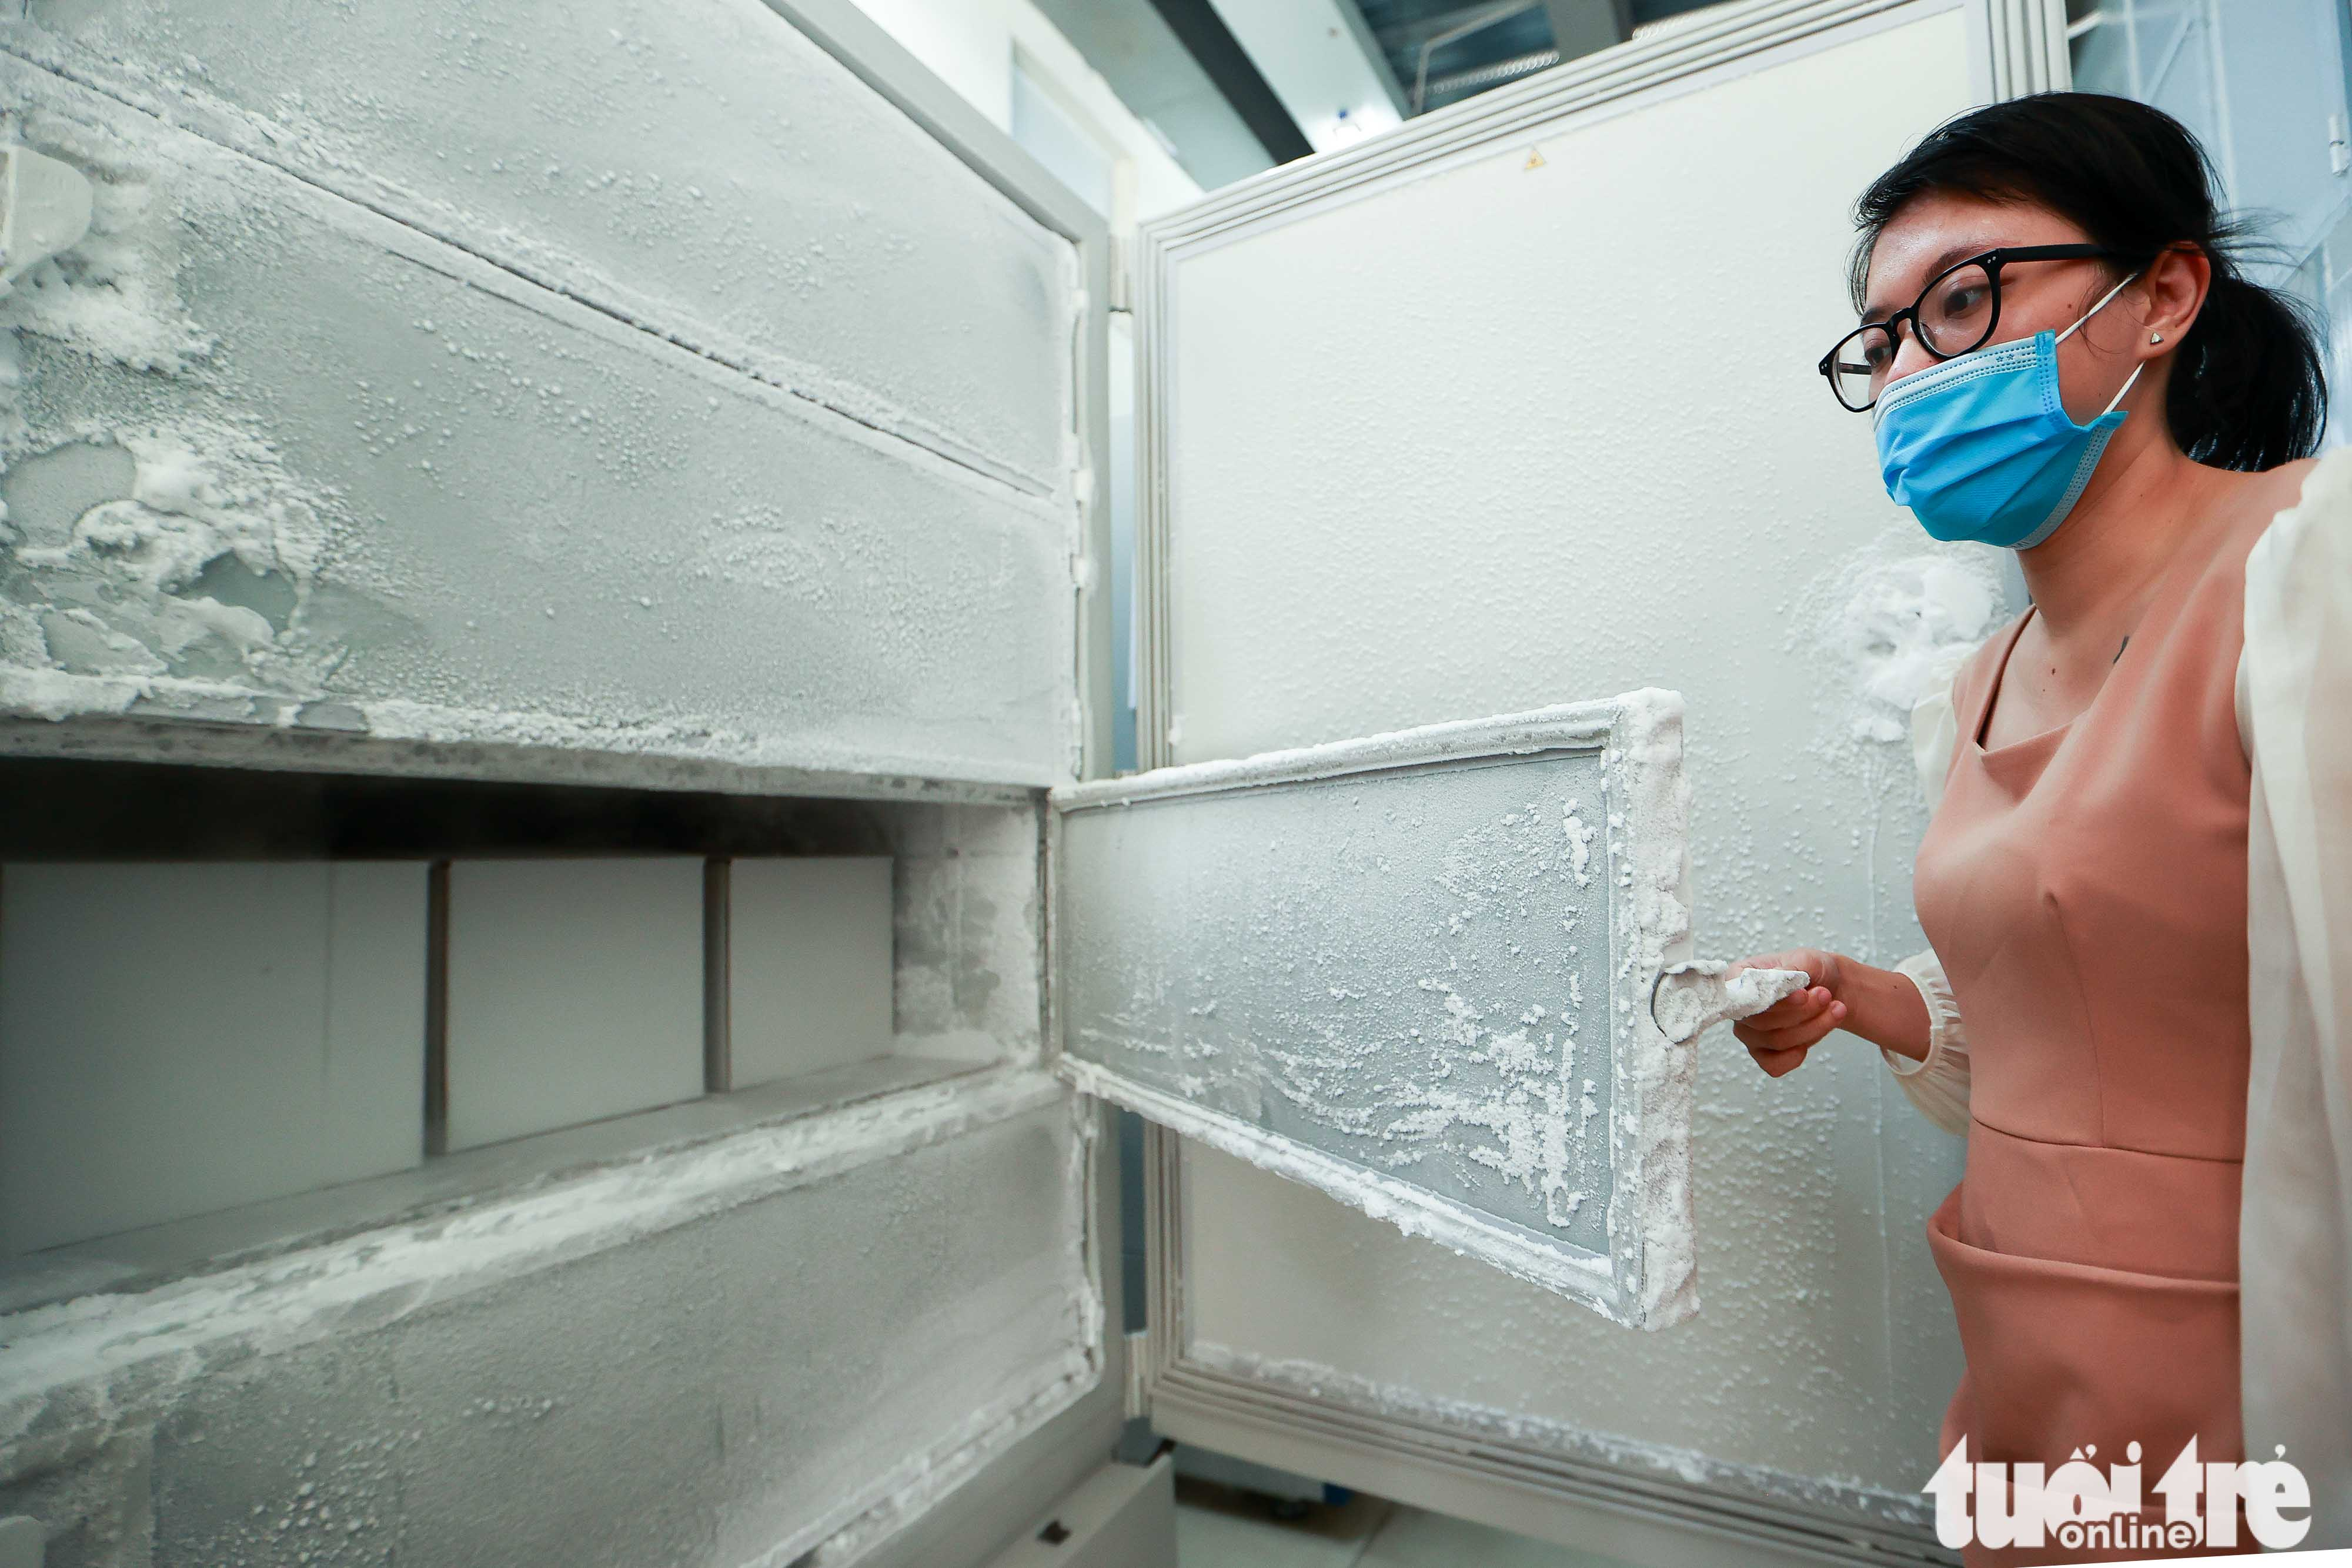 An ultra-low temperature freezers is pictured at the National Institute of Hygiene and Epidemiology in Hanoi, October 12, 2021. Photo: Nguyen Khanh / Tuoi Tre